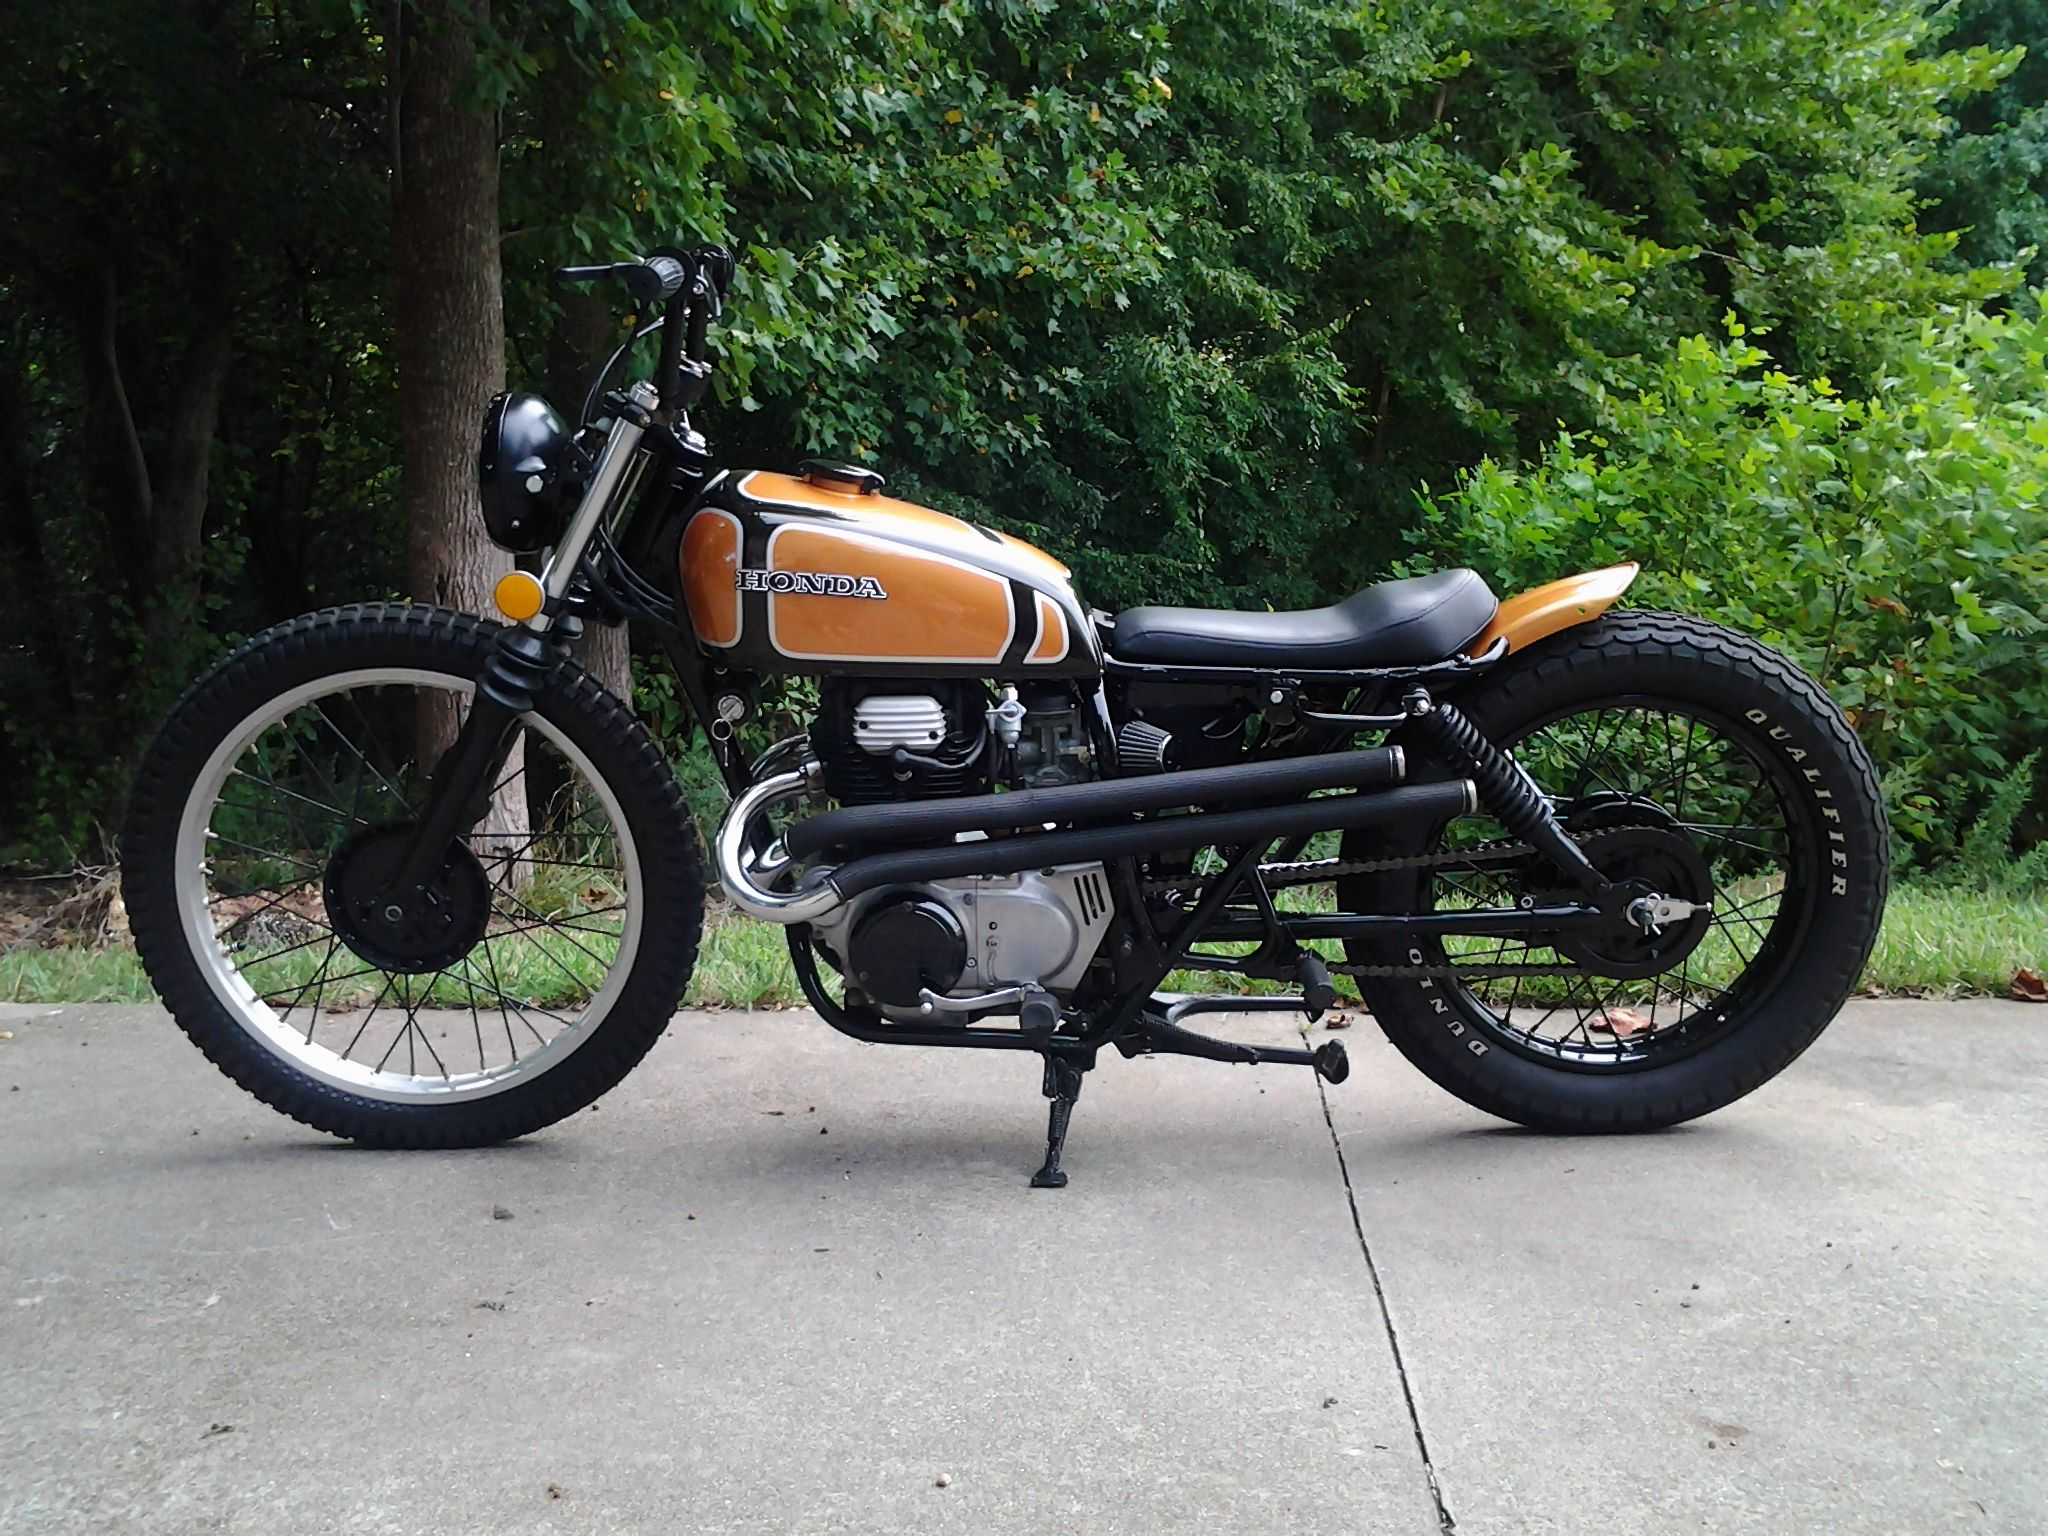 Honda Cb360 Bobber Cb 360 Wiring Diagram Fast Free Shipping On Your 1974 Motorcycle Parts 350 Together With Mag Ic